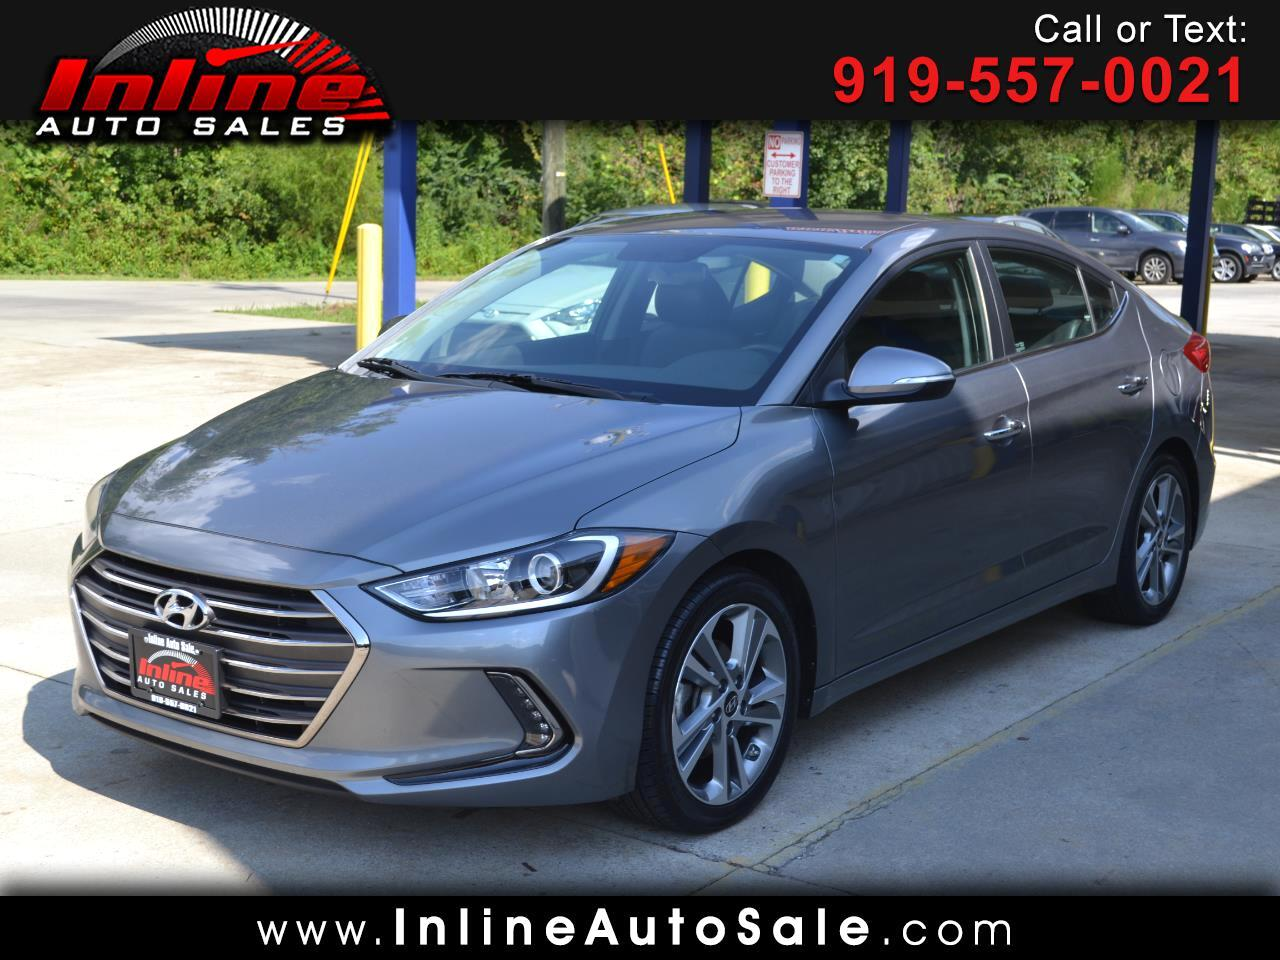 2017 Hyundai Elantra Limited 2.0L Auto (Ulsan) *Ltd Avail*